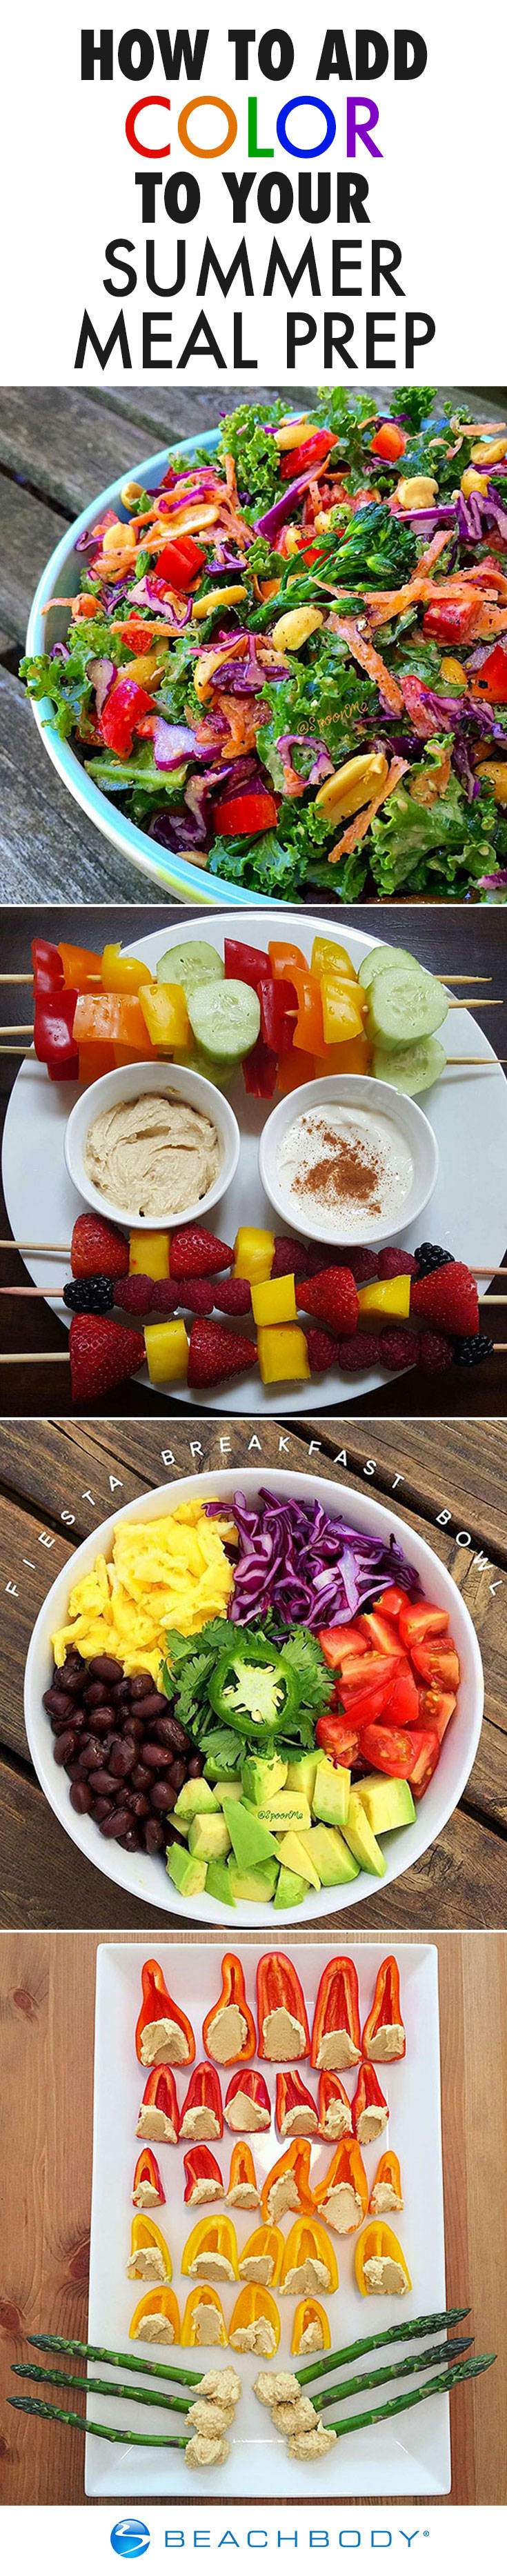 How to Add Color to Your Summer Meal Prep